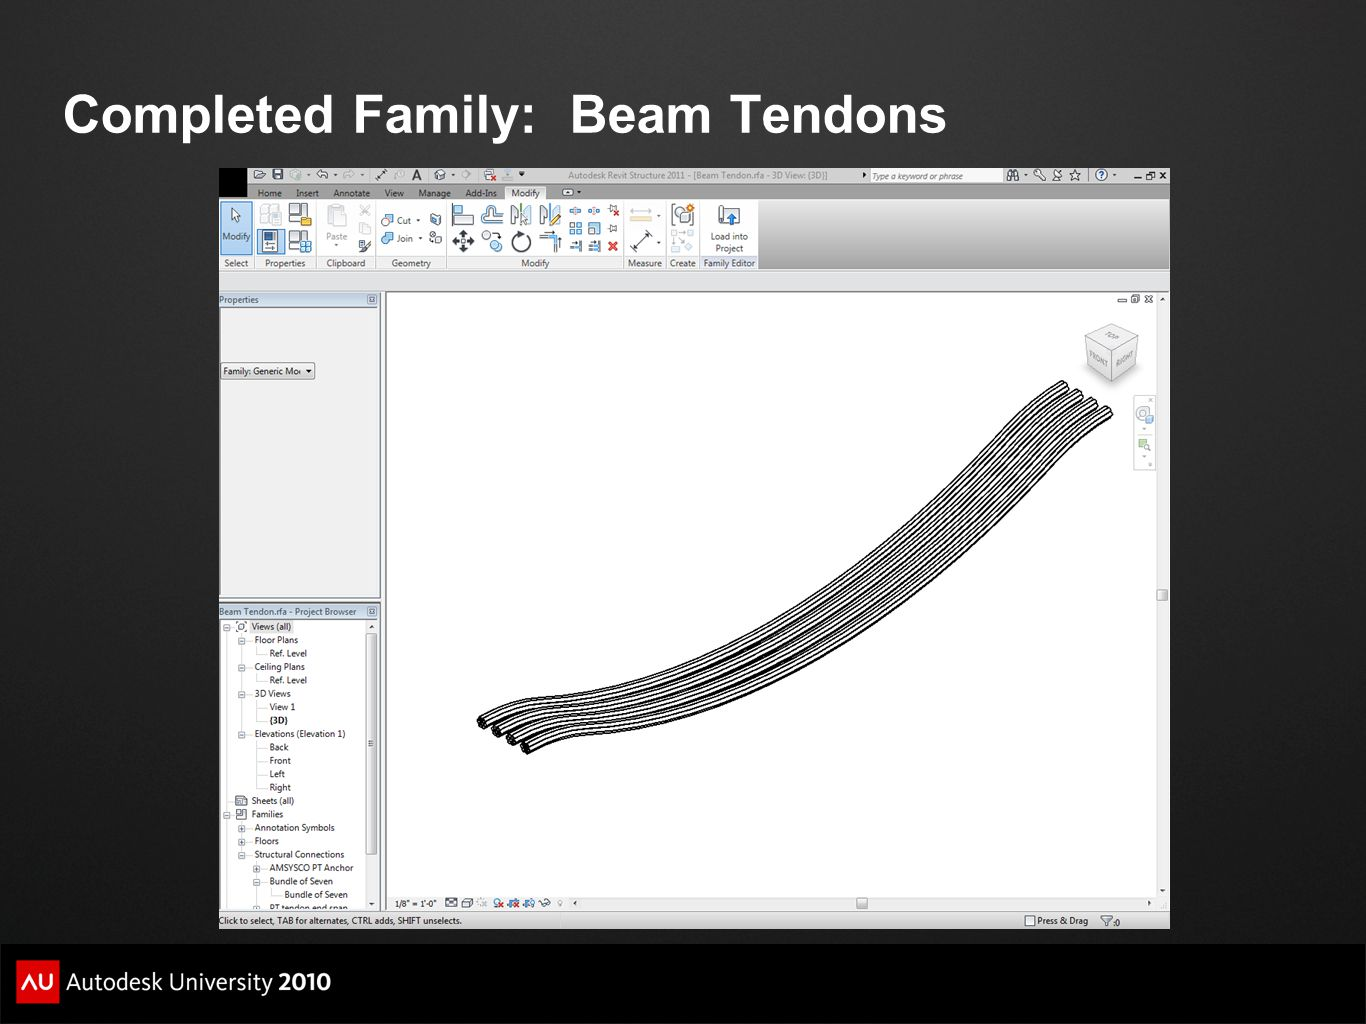 Completed Family: Beam Tendons